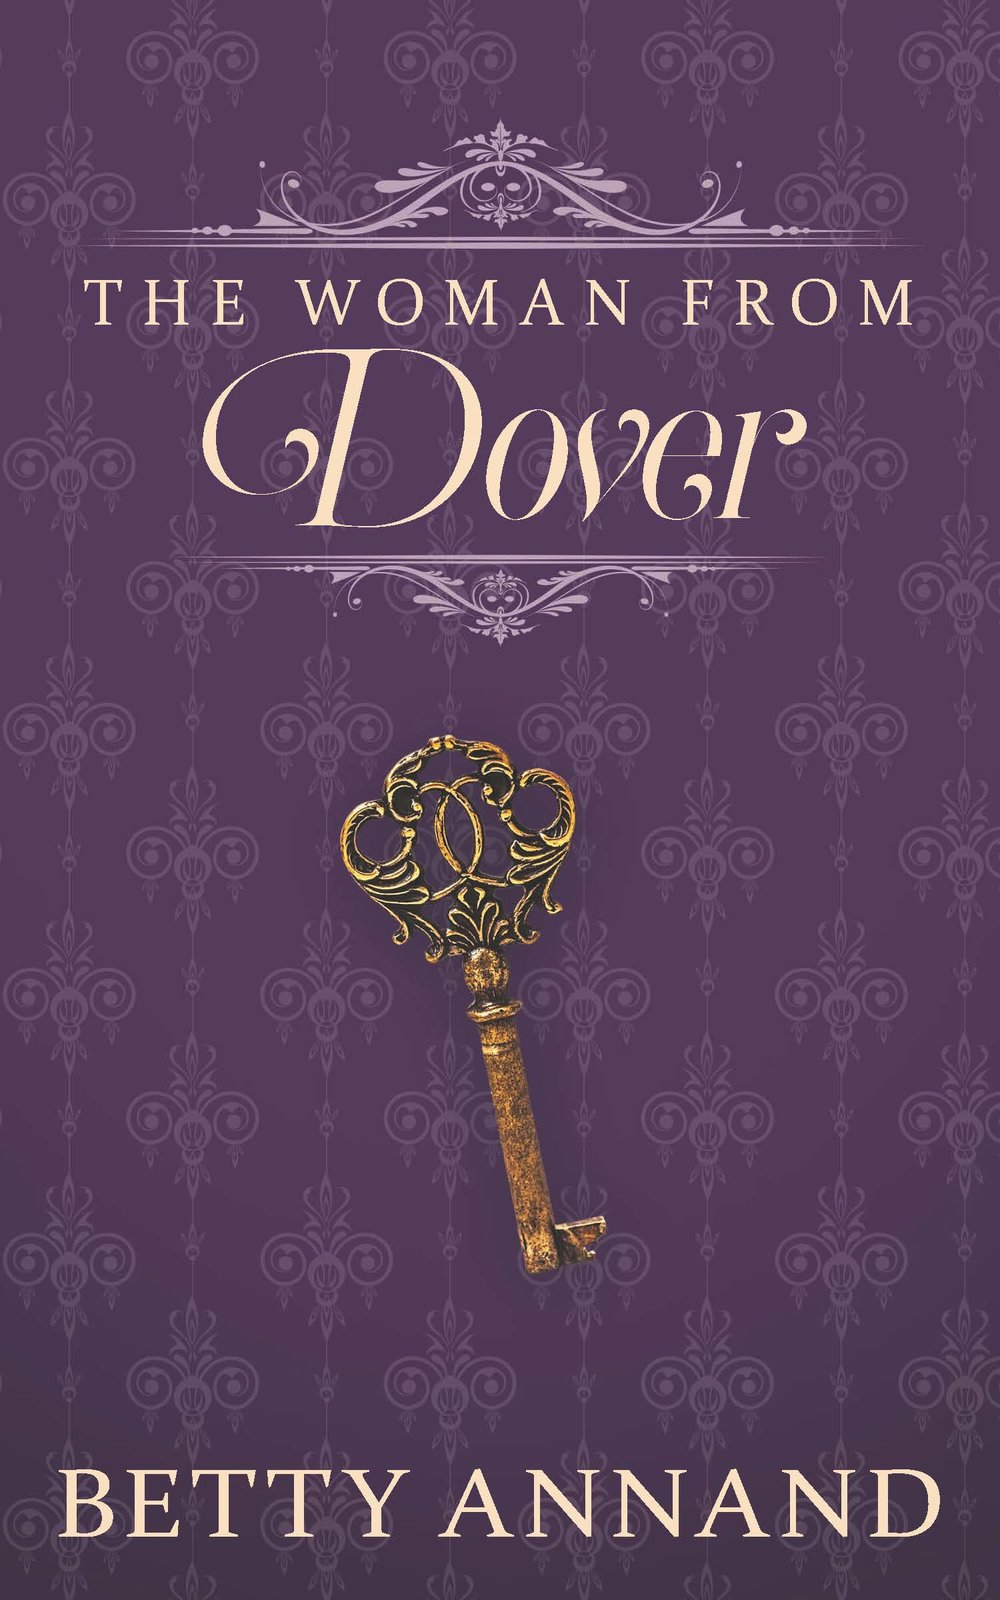 The Woman from Dover - Chapter 1Pages 1 - 6